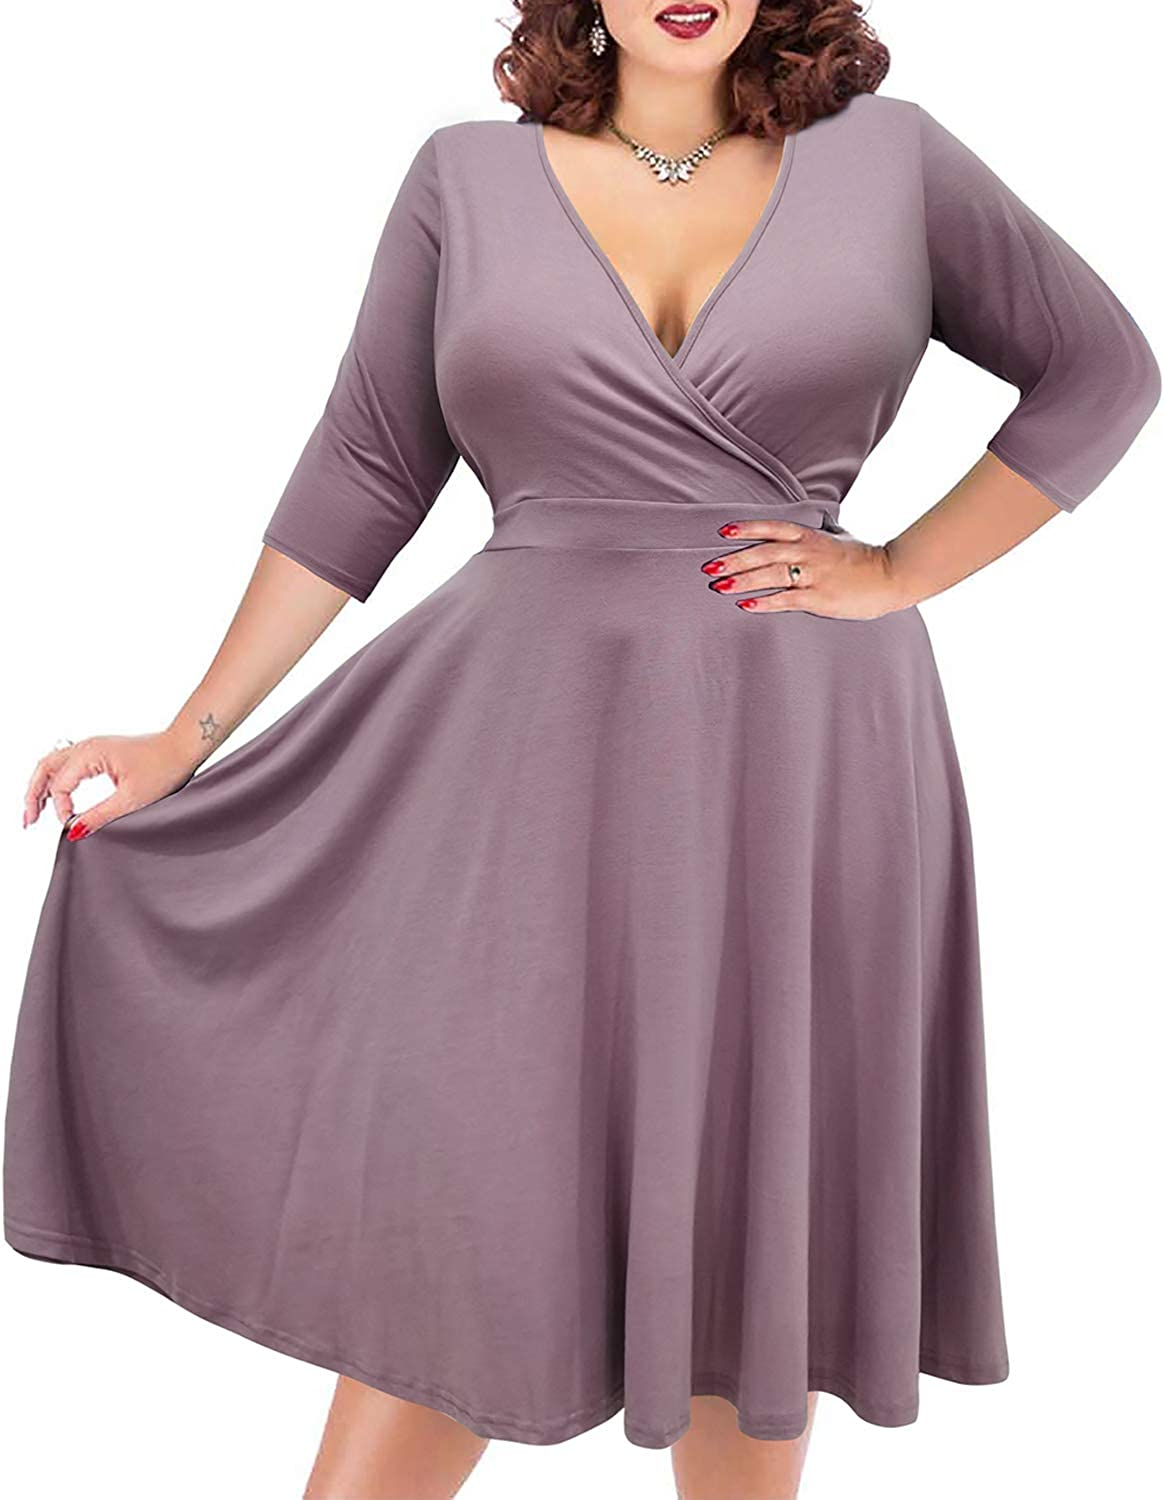 1950s Inspired Fashion: Recreate the Look Nemidor Womens V-Neckline Stretchy Casual Midi Plus Size Bridesmaid Dress $29.99 AT vintagedancer.com